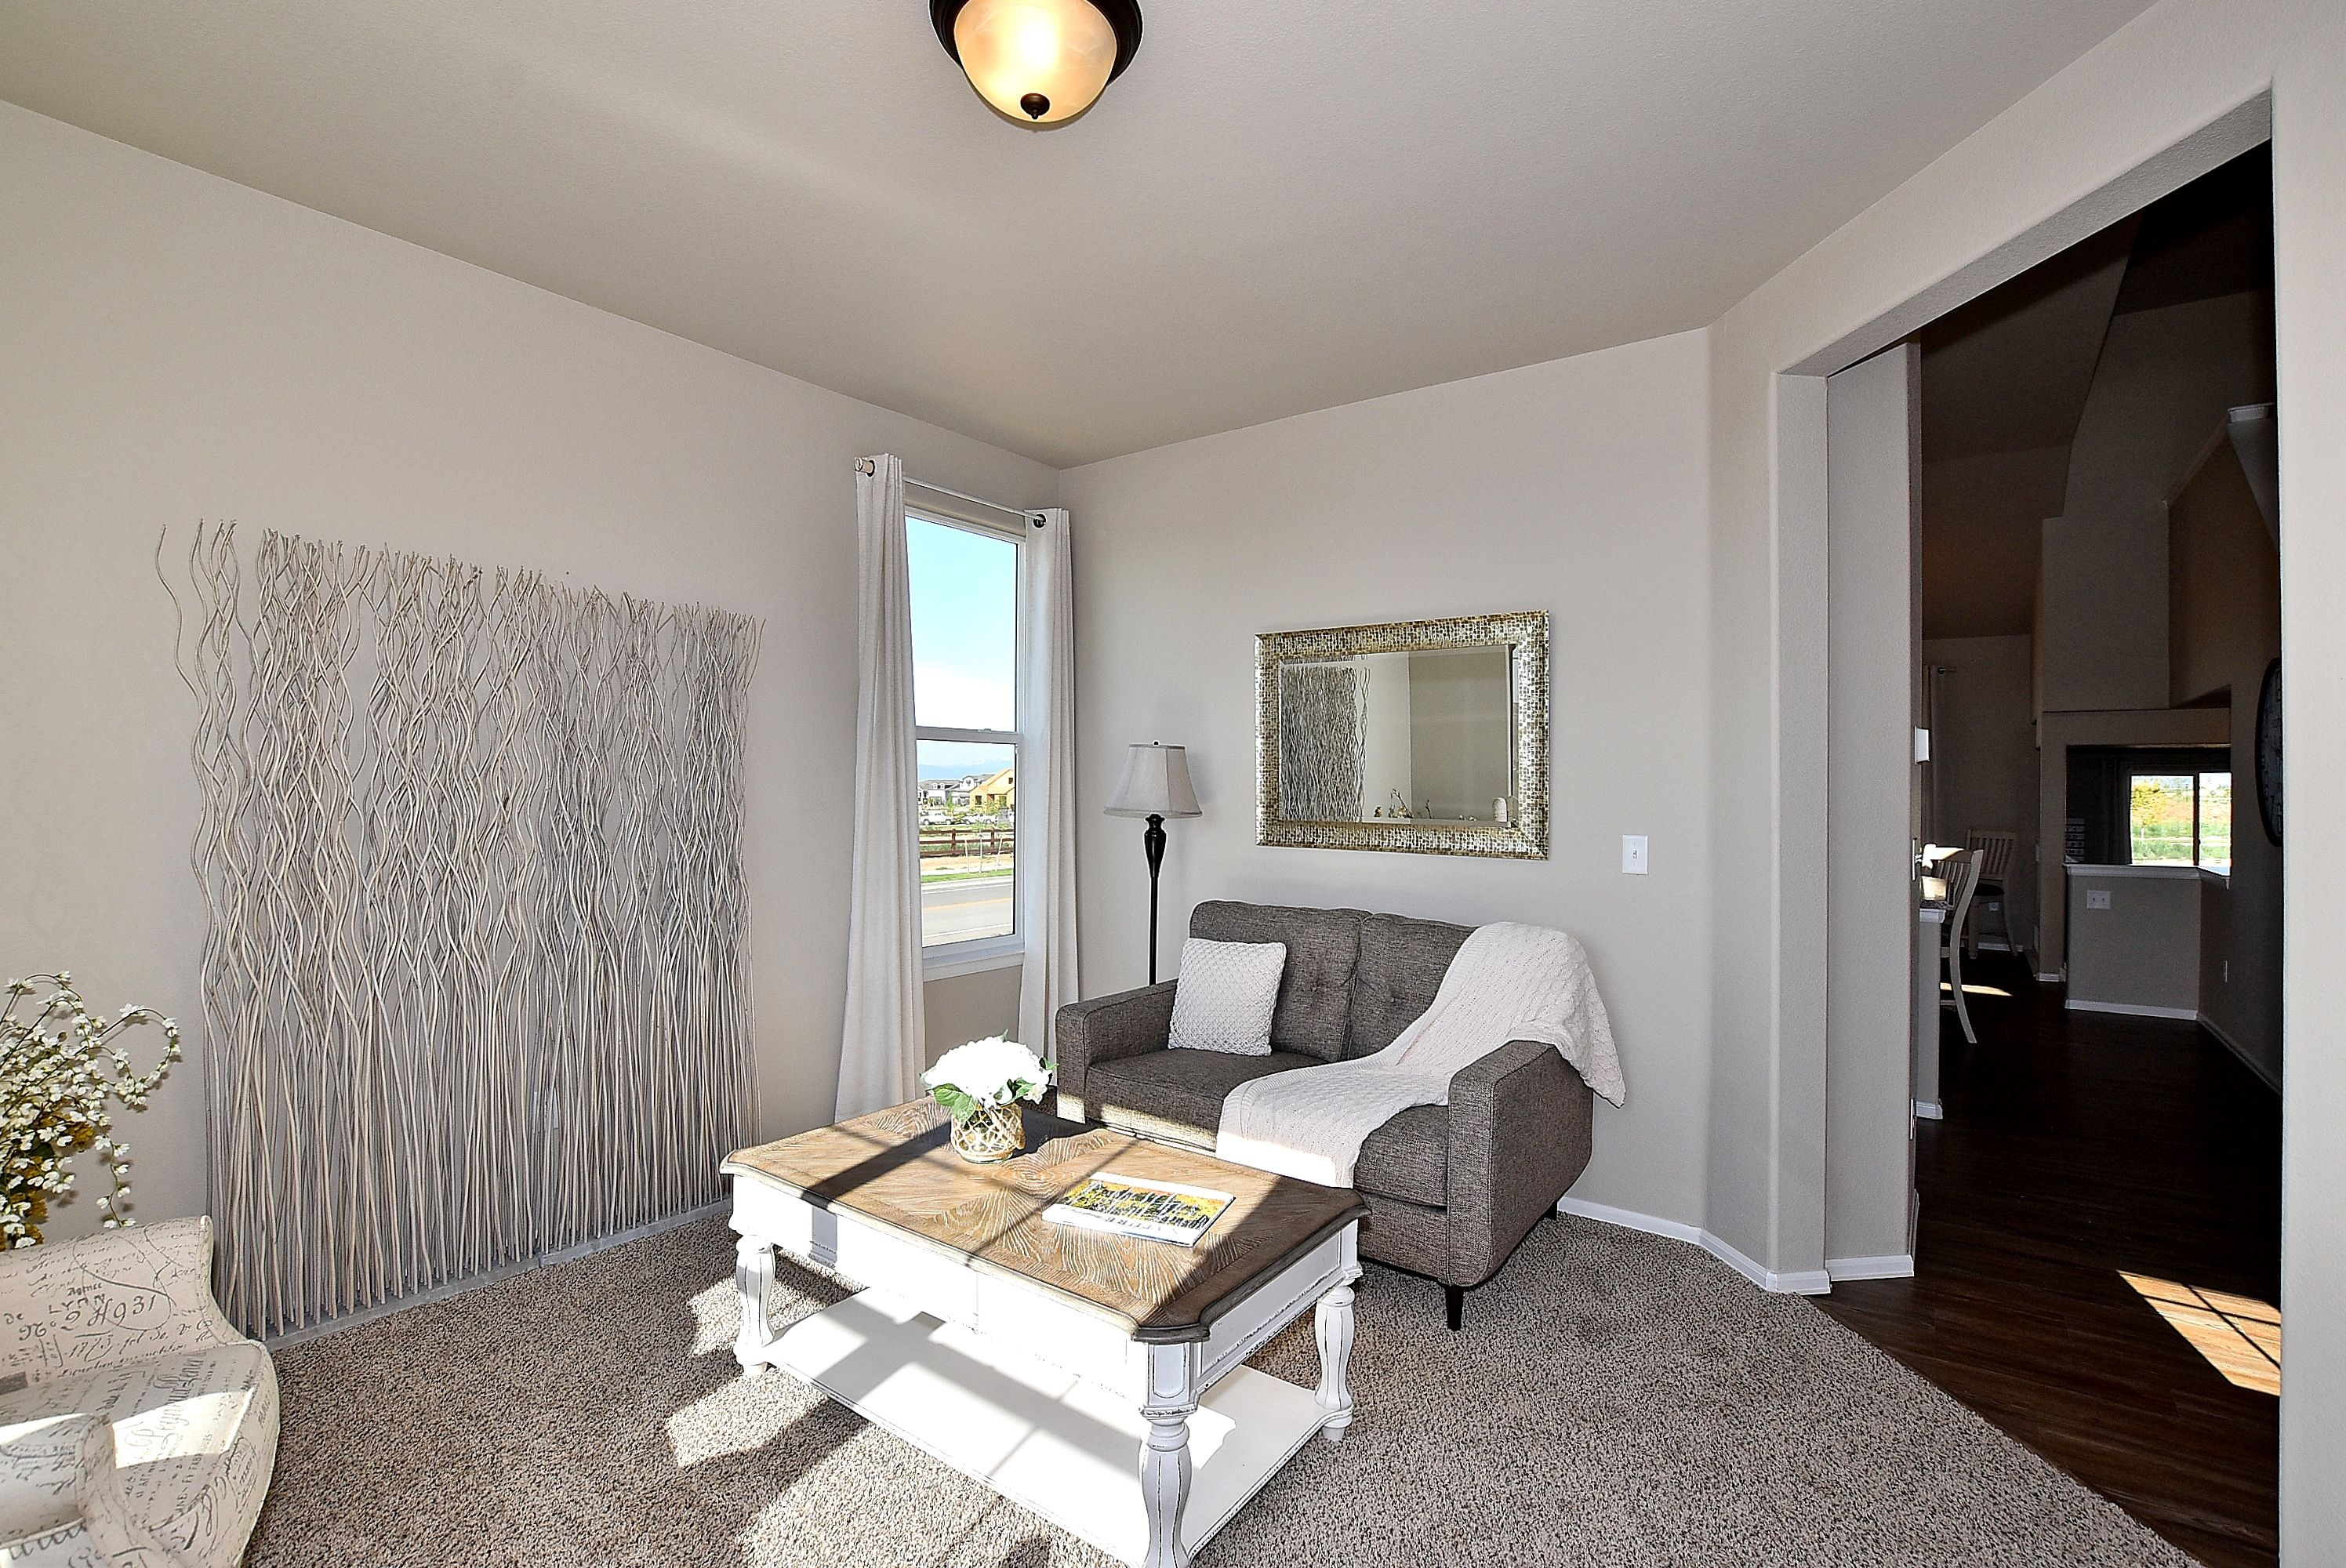 Bedroom featured in the Big Horn By Journey Homes in Greeley, CO